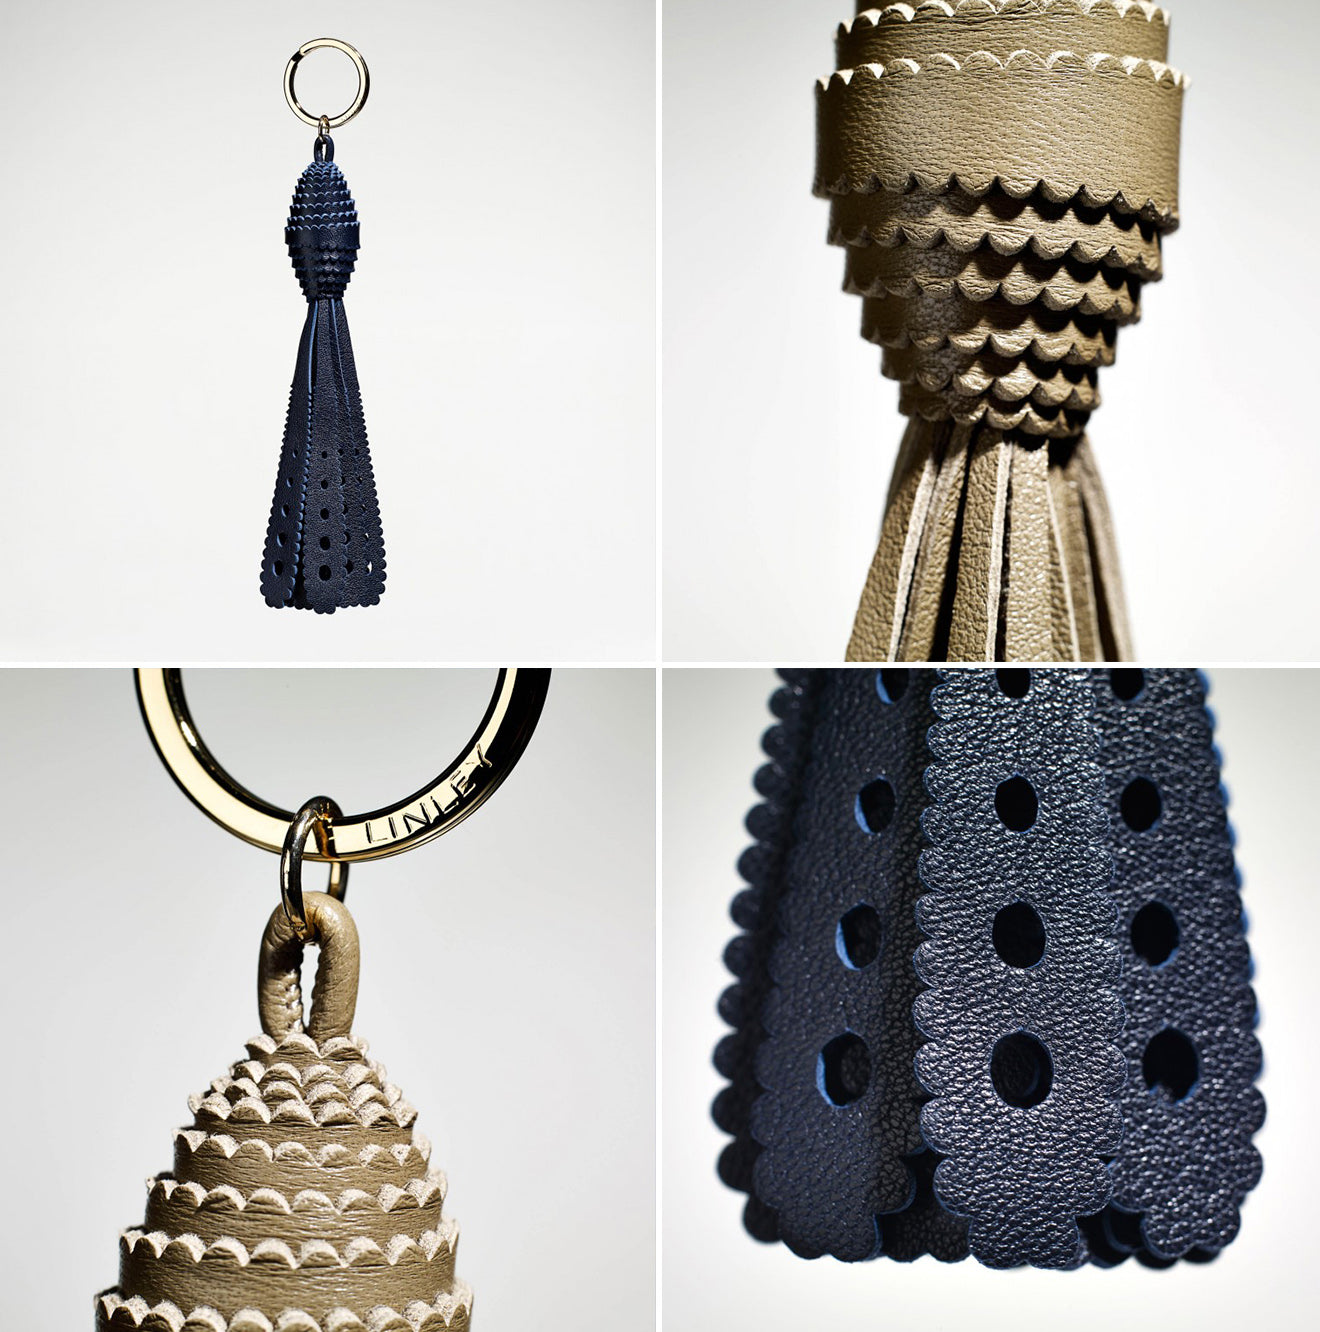 LINLEY Gift accessory key ring from the Girih collection